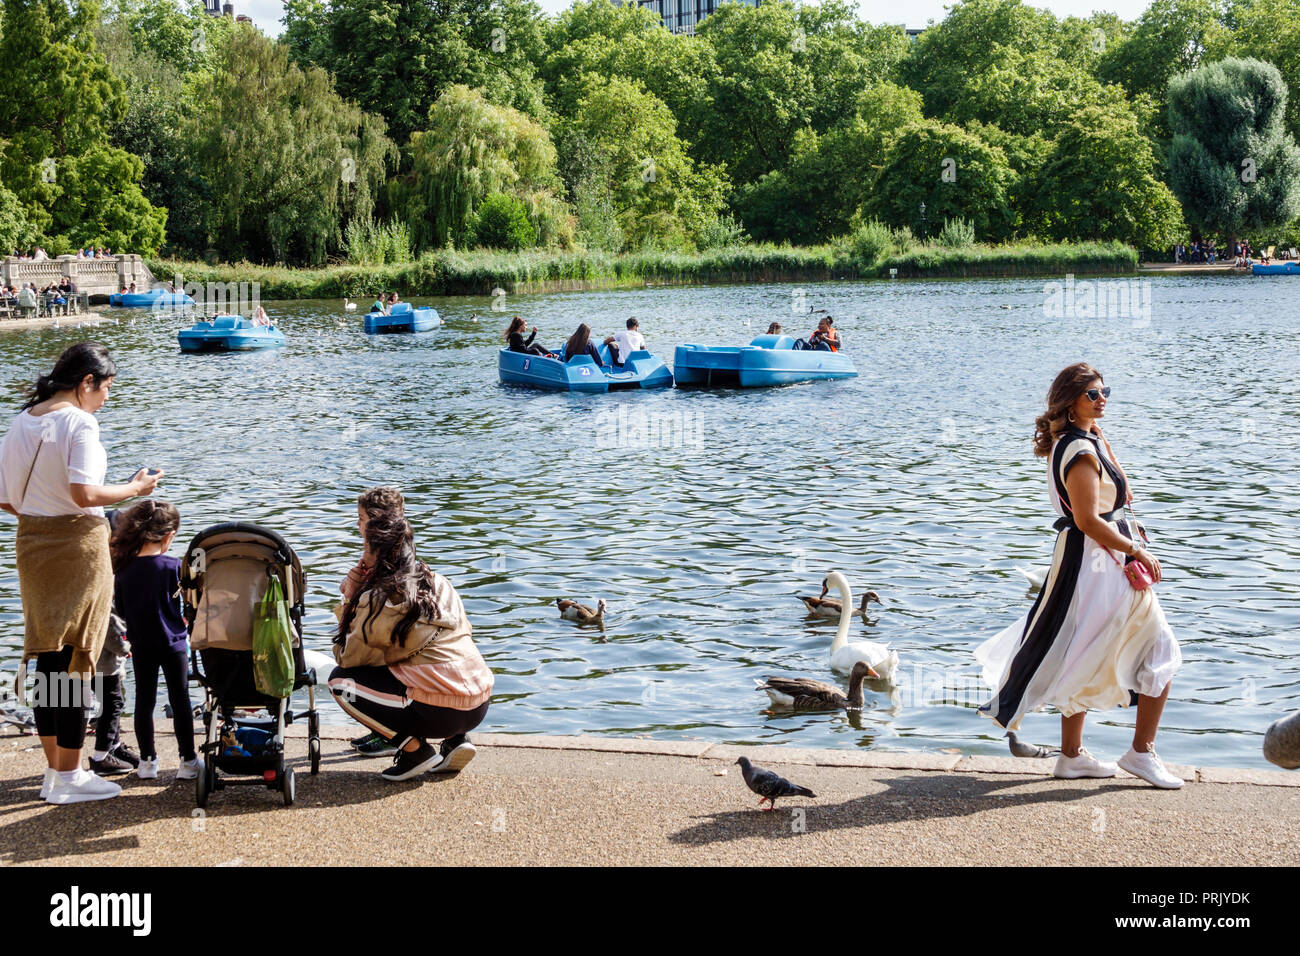 London England United Kingdom Great Britain Royal Parks Hyde Park park green space The Serpentine recreational lake woman girl child family feeding du - Stock Image